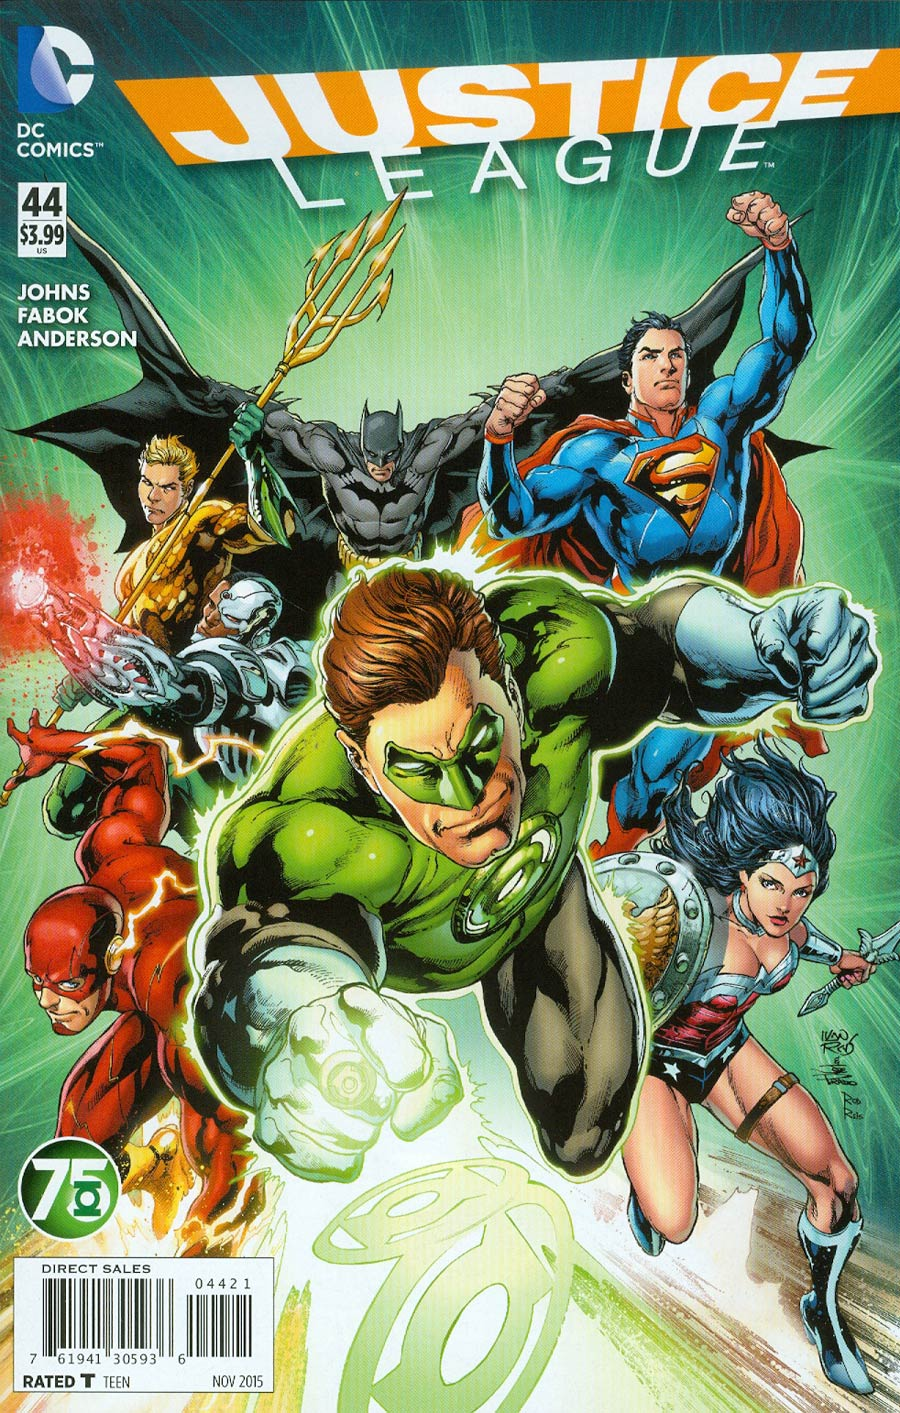 Justice League Vol 2 #44 Cover B Variant Ivan Reis Green Lantern 75th Anniversary Cover